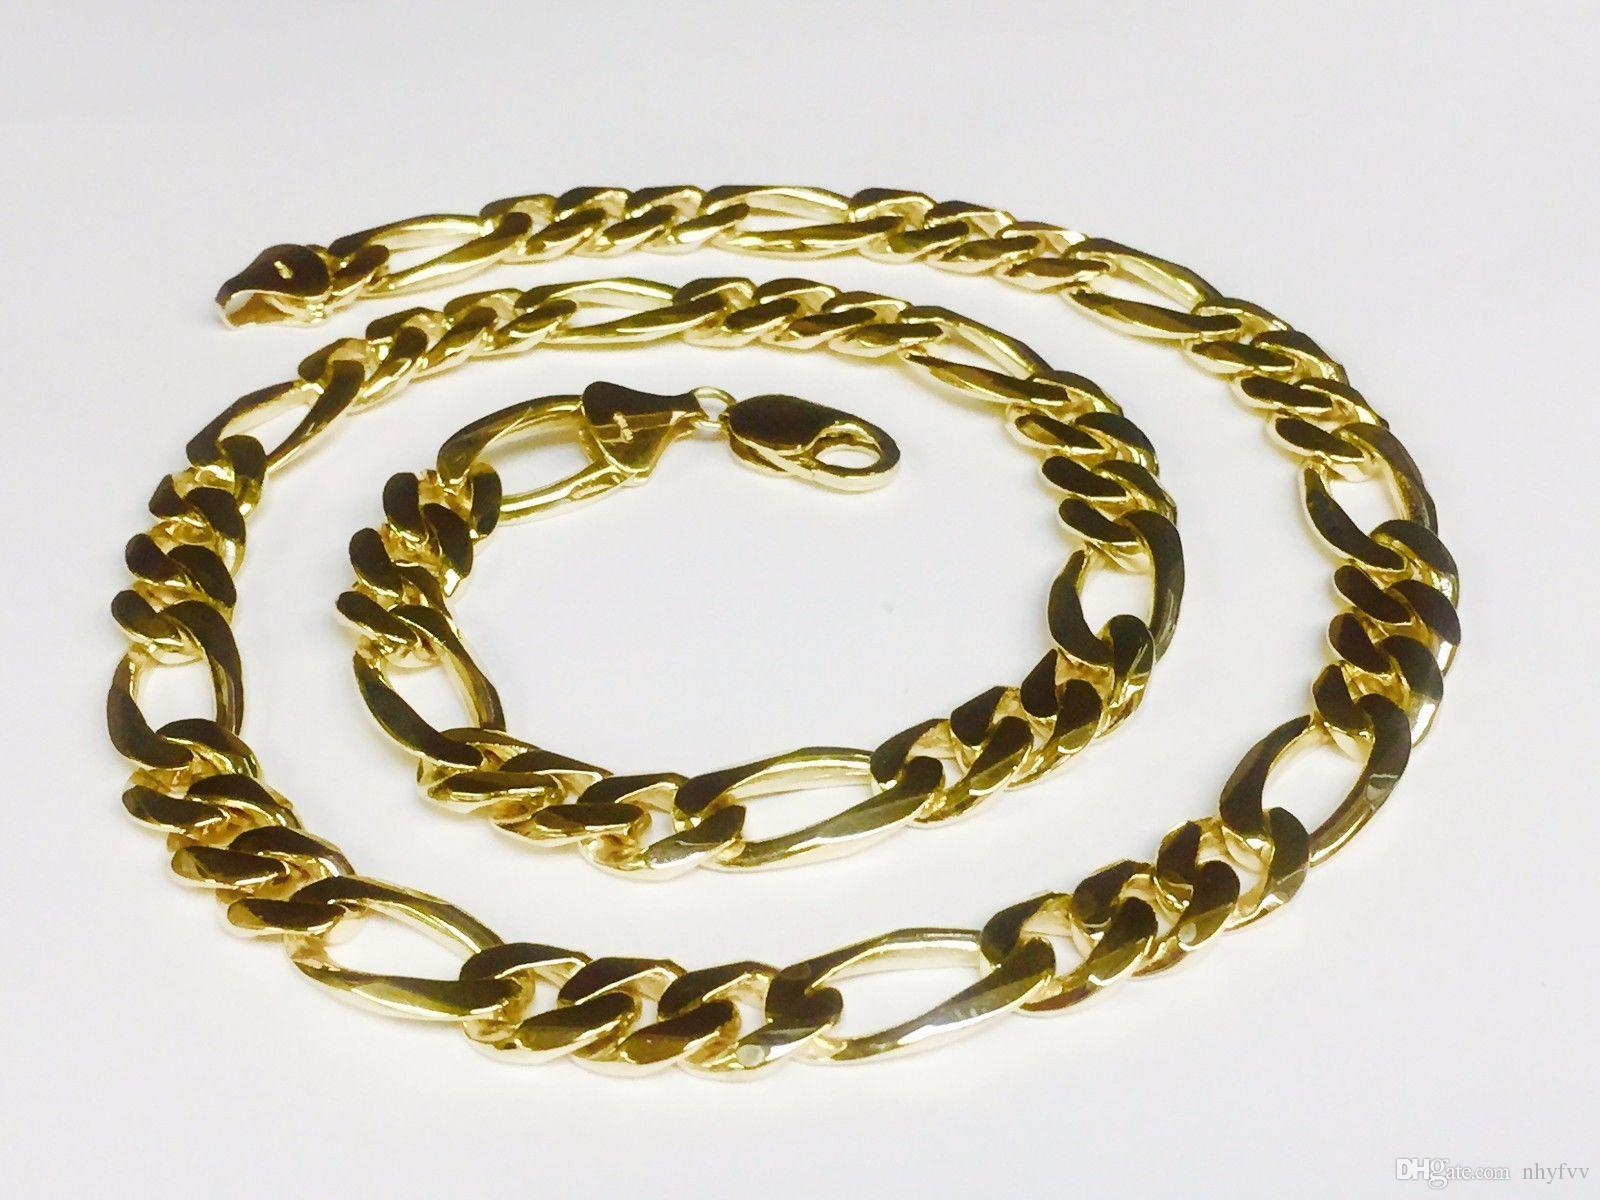 product miami tb ch link cuban gold cubanlinks style grams chain chains rope